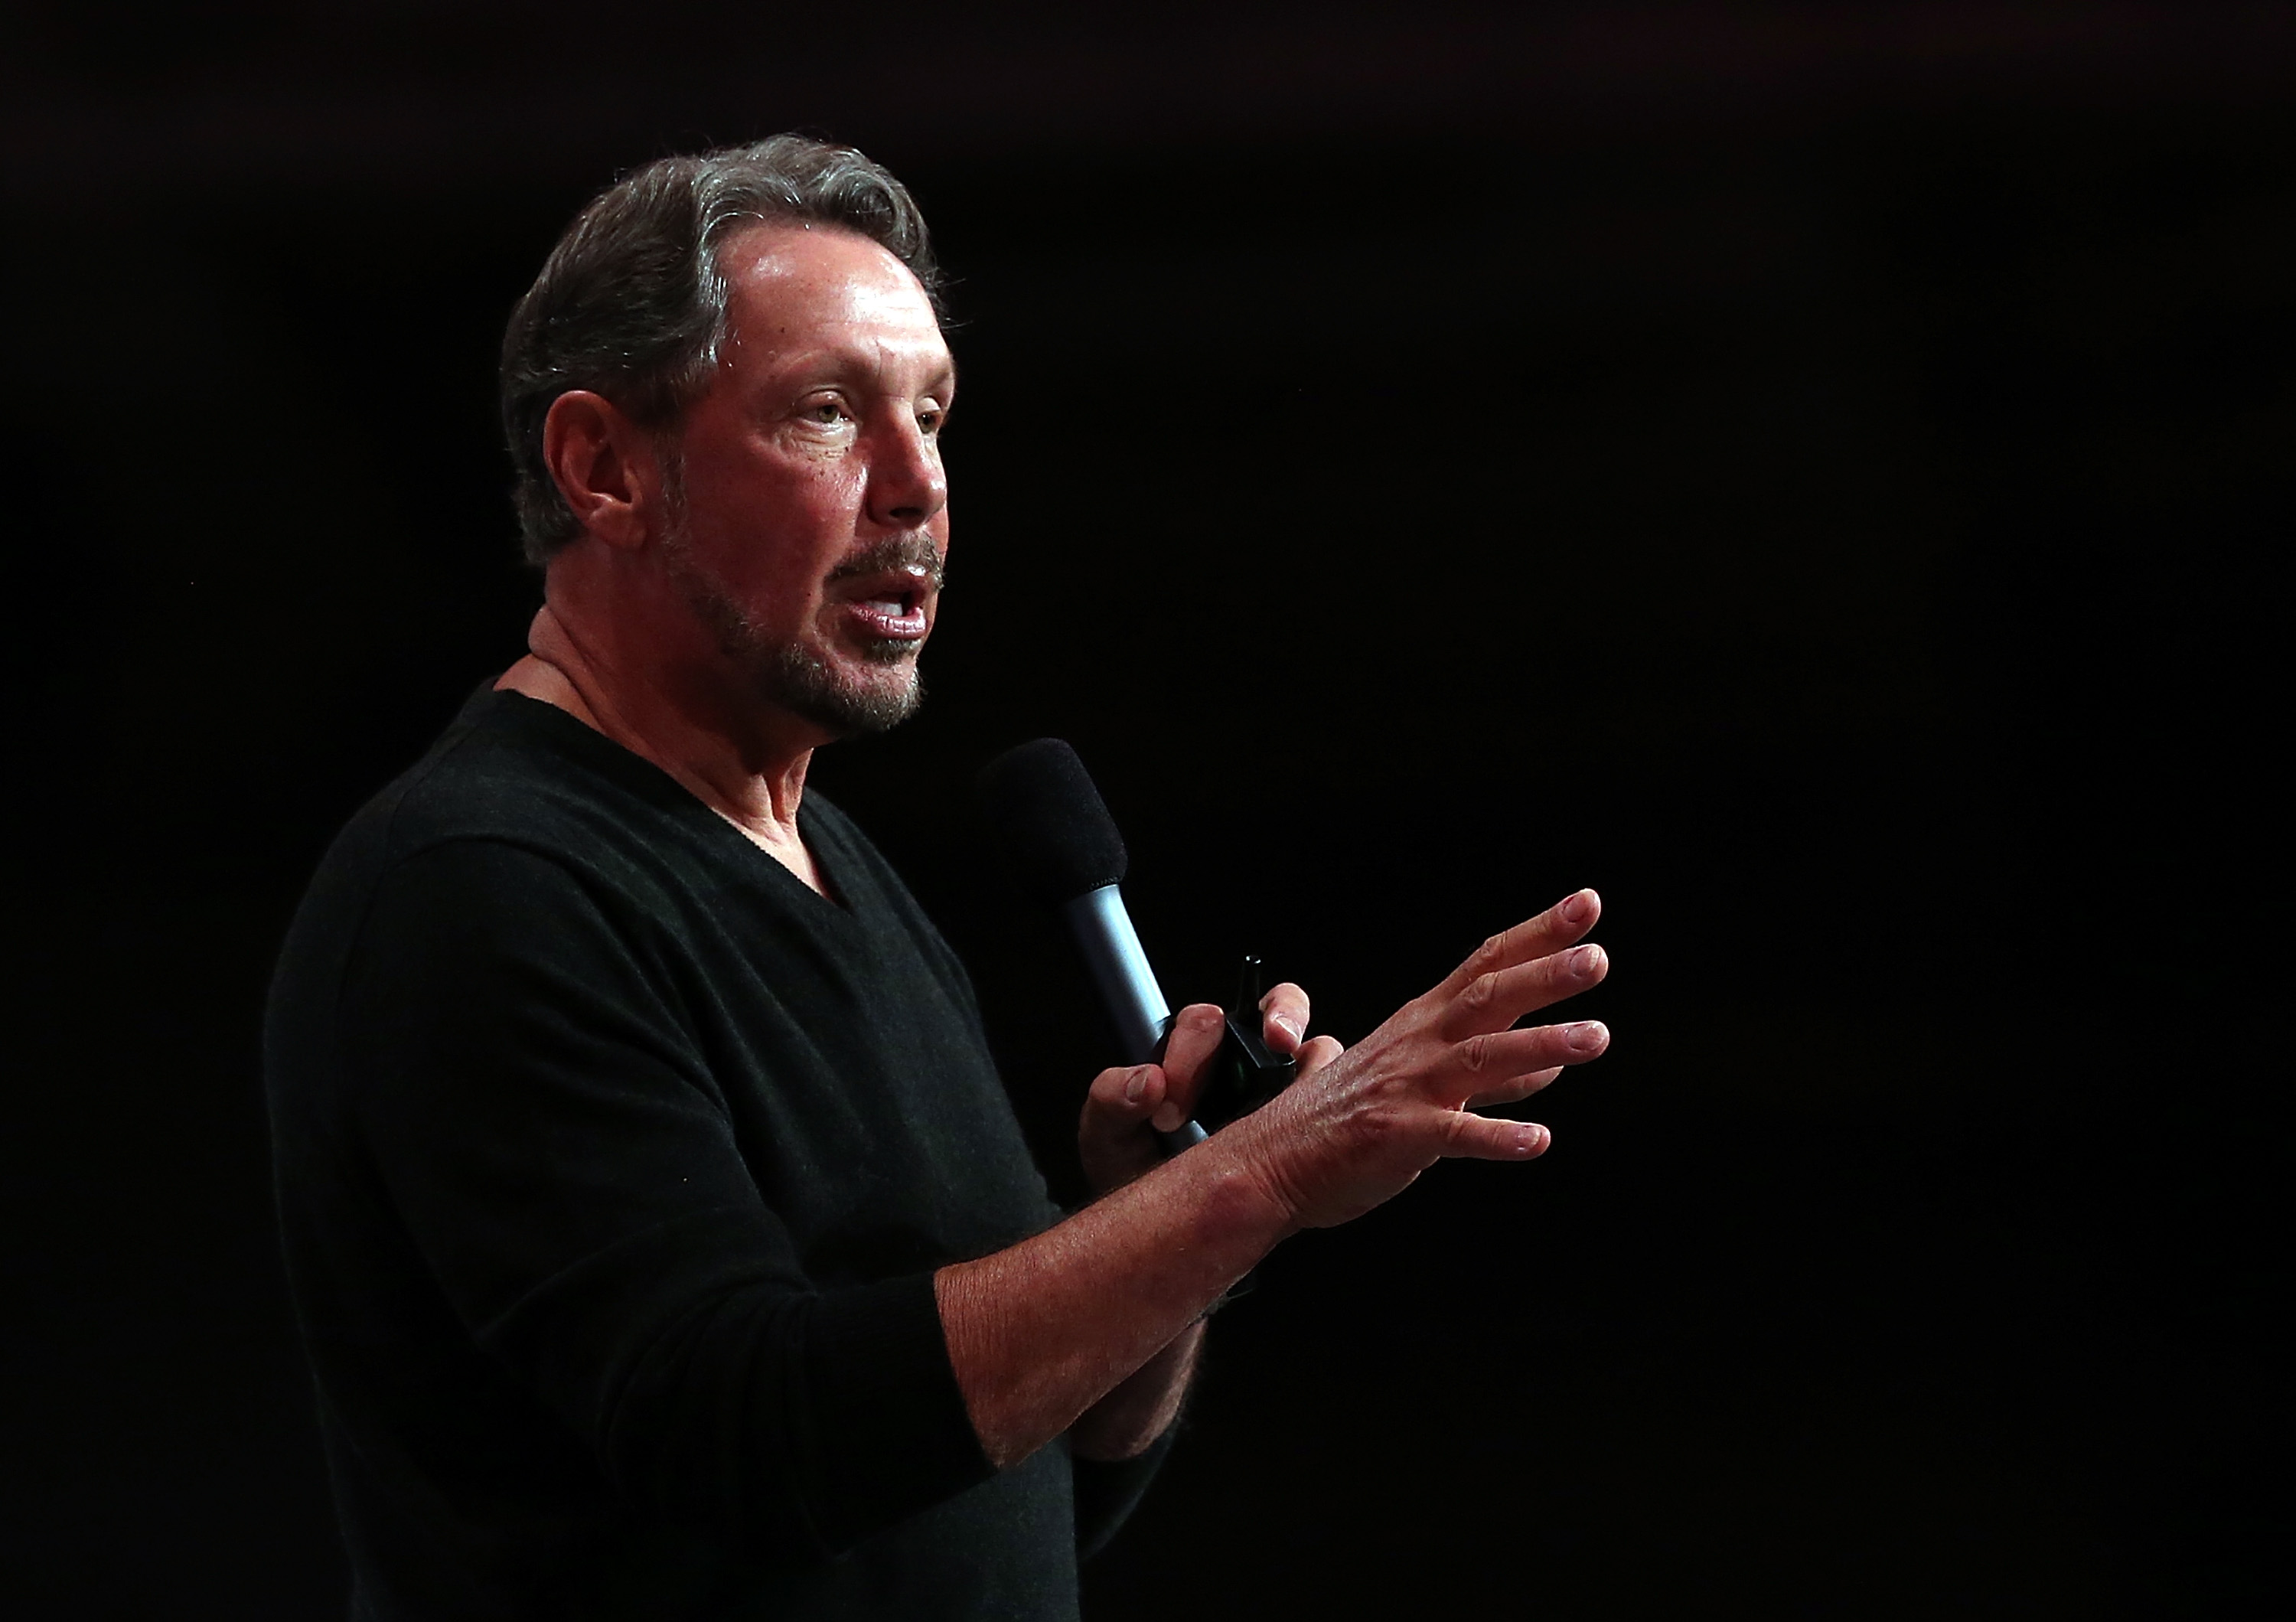 Oracle CEO Larry Ellison delivers a keynote address during the 2013 Oracle Open World conference on September 22, 2013 in San Francisco, California. (Photo by Justin Sullivan/Getty Images)